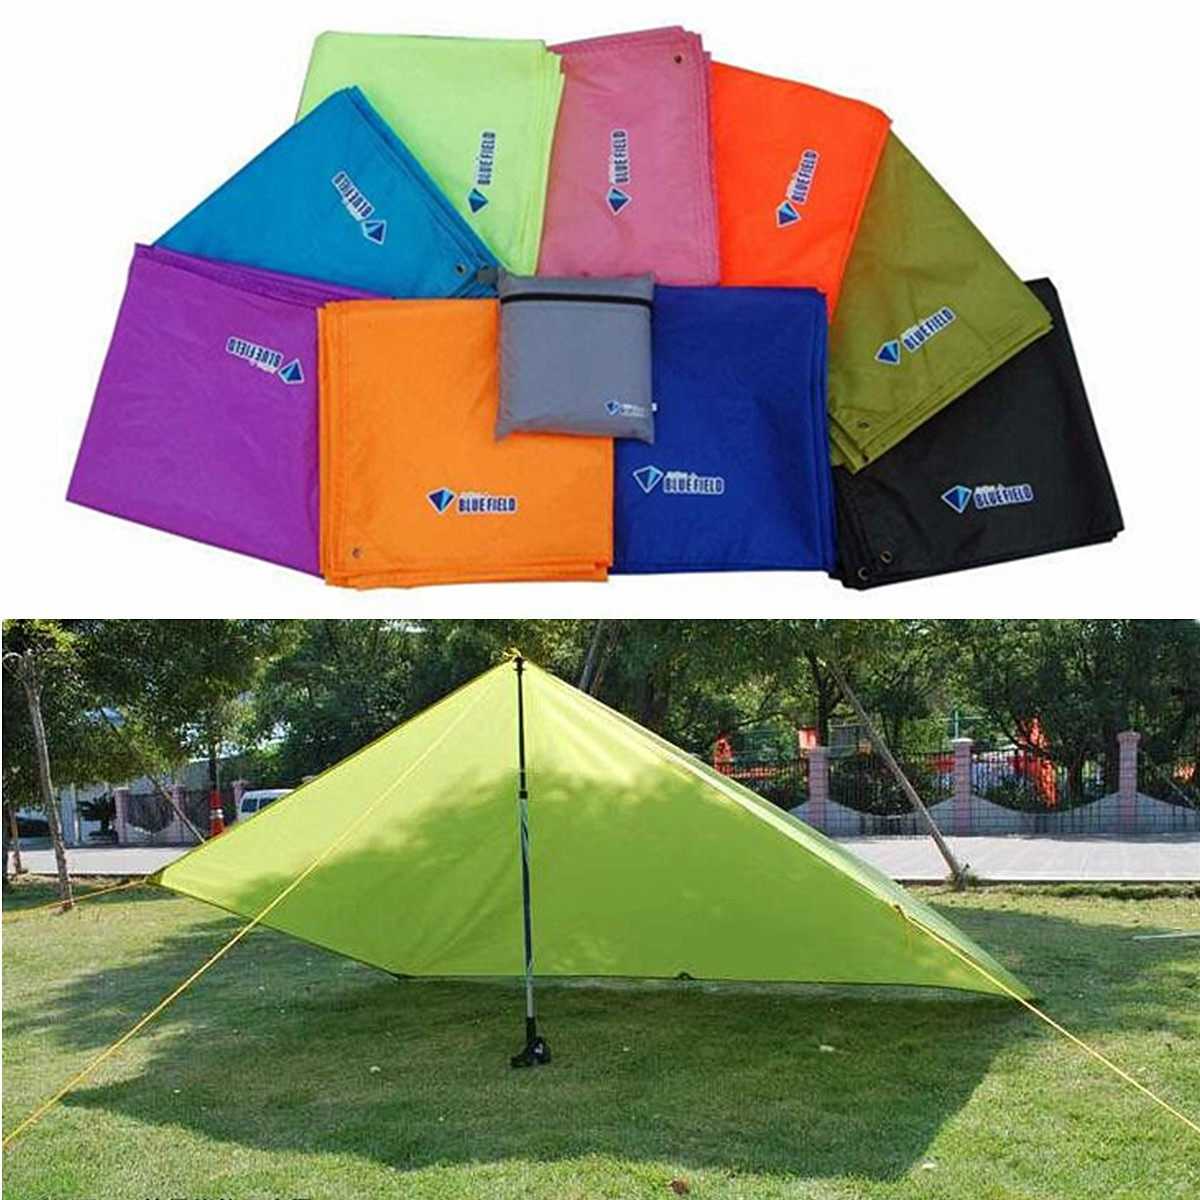 IPRee 250x150CM Portable Camping Tent Sunshade Outdoor